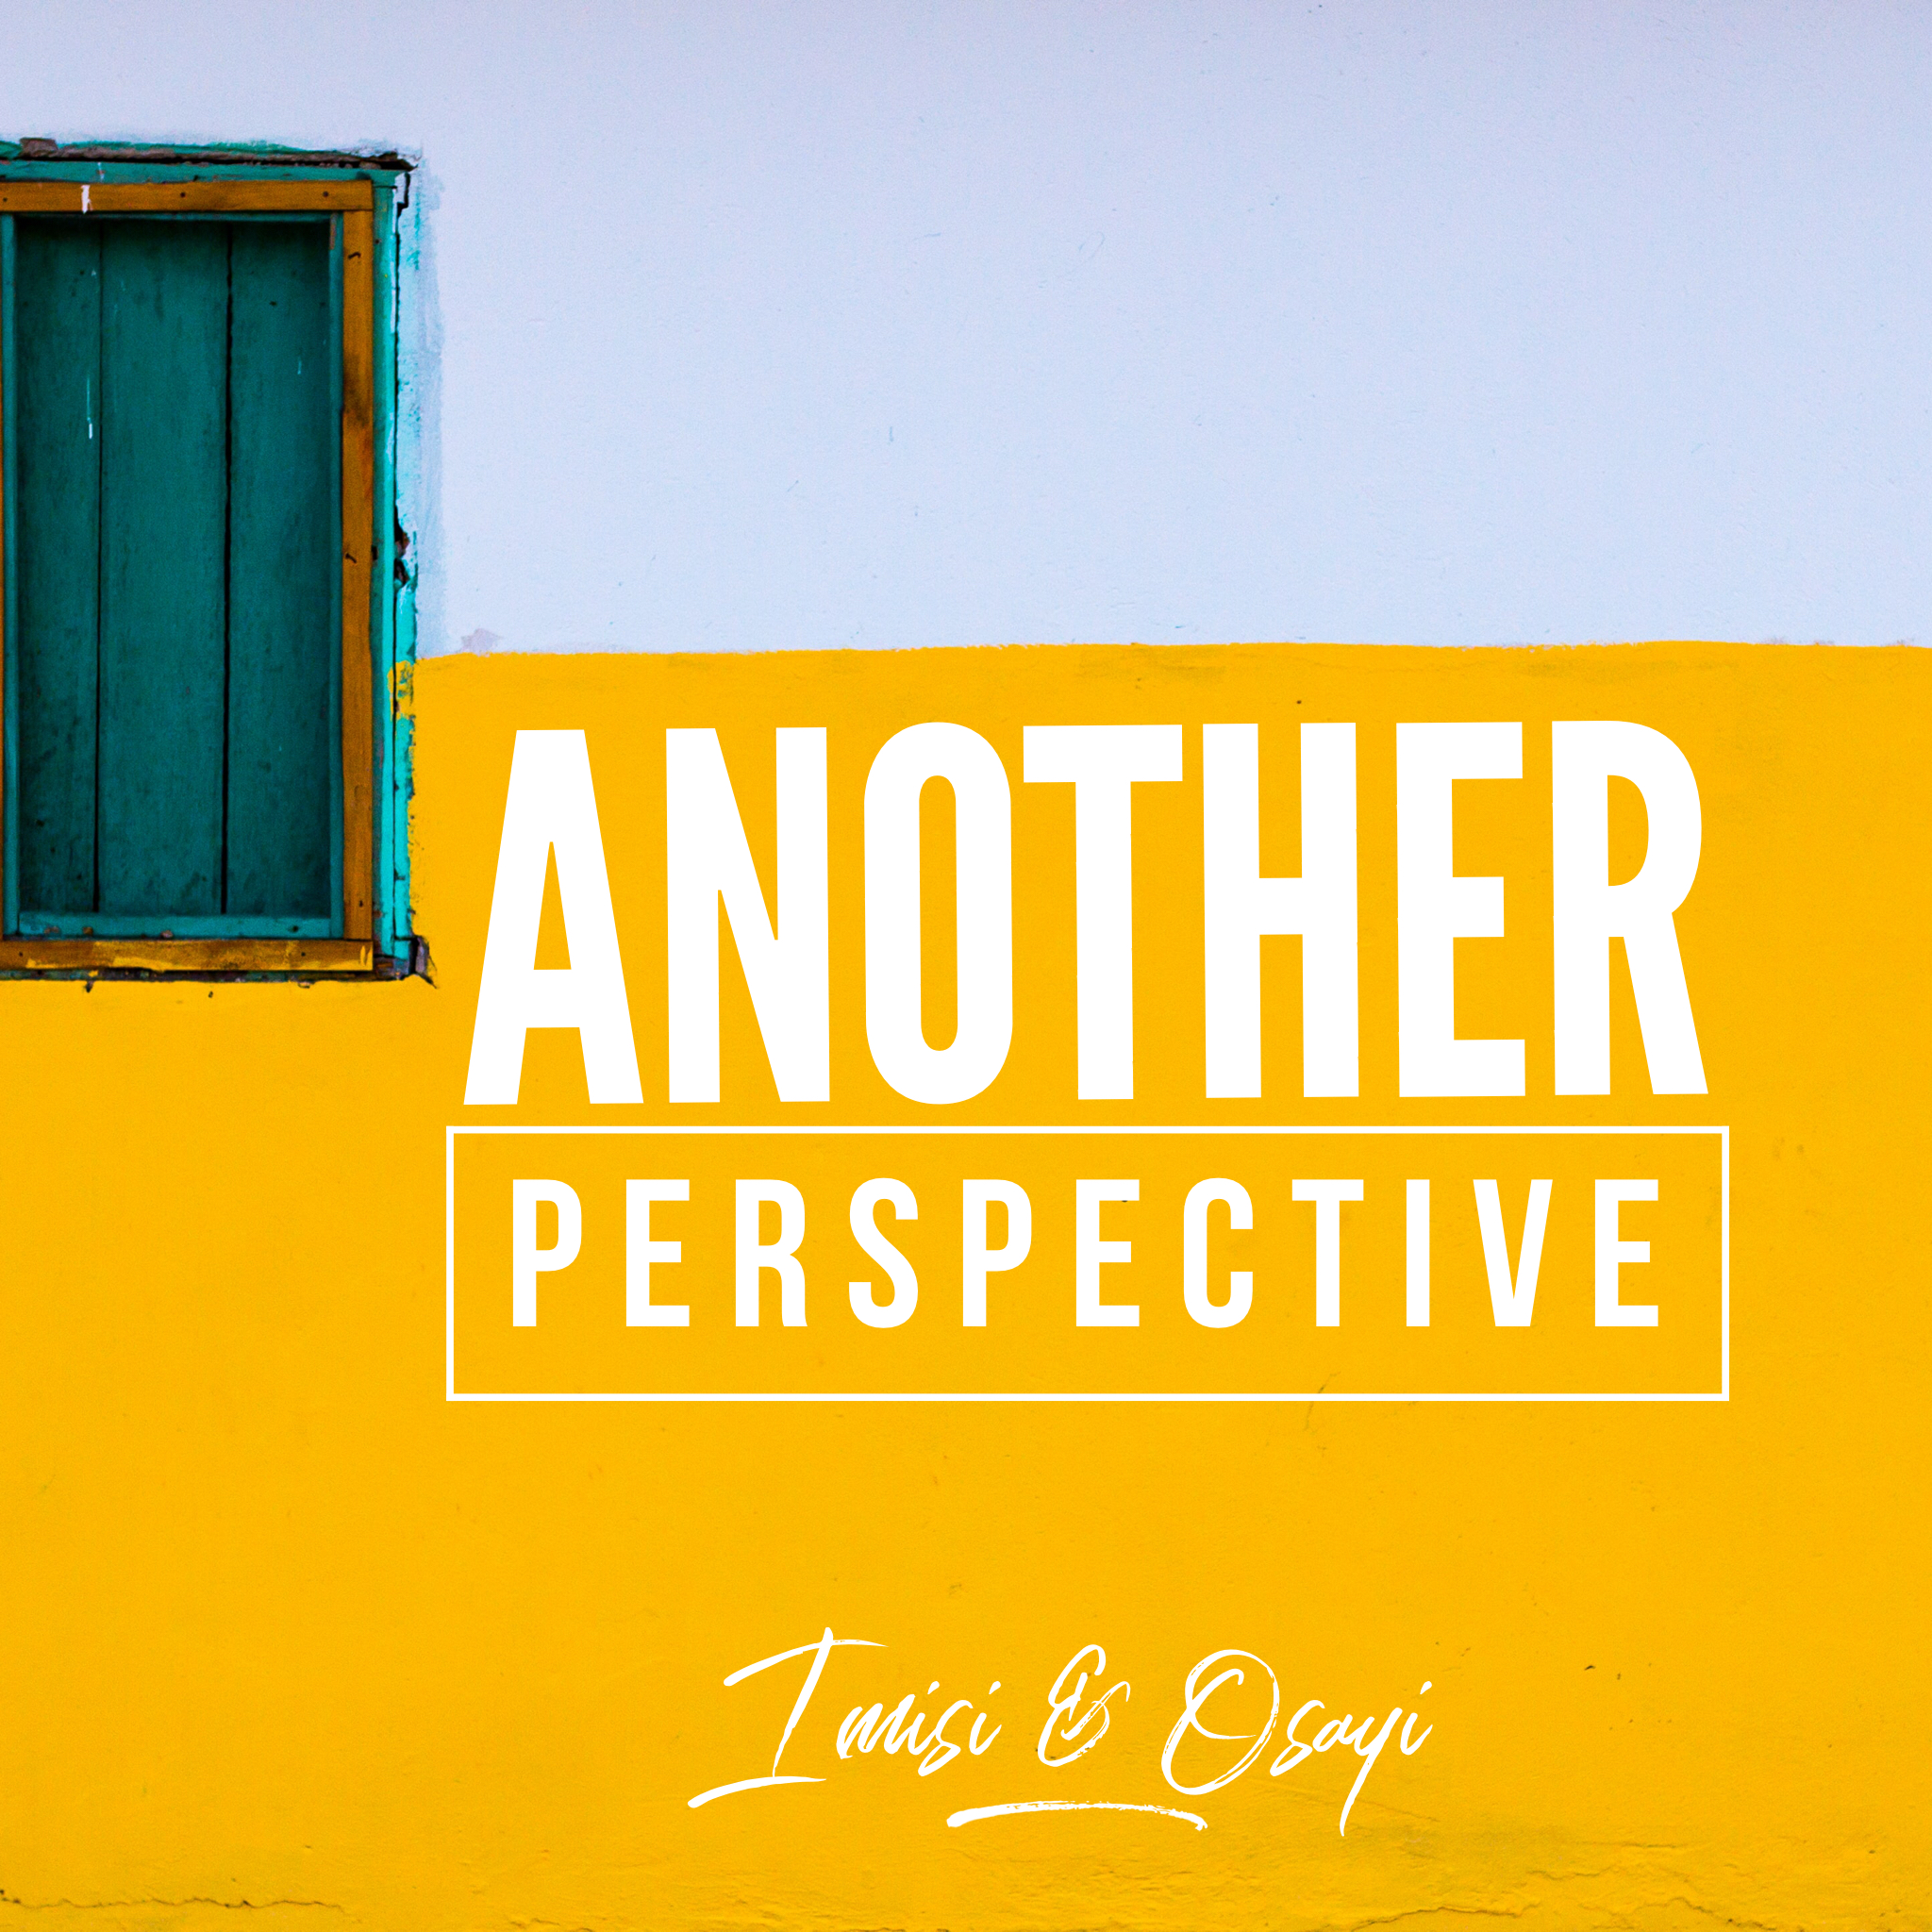 Episode 7 – Another Perspective podcast – InLaws